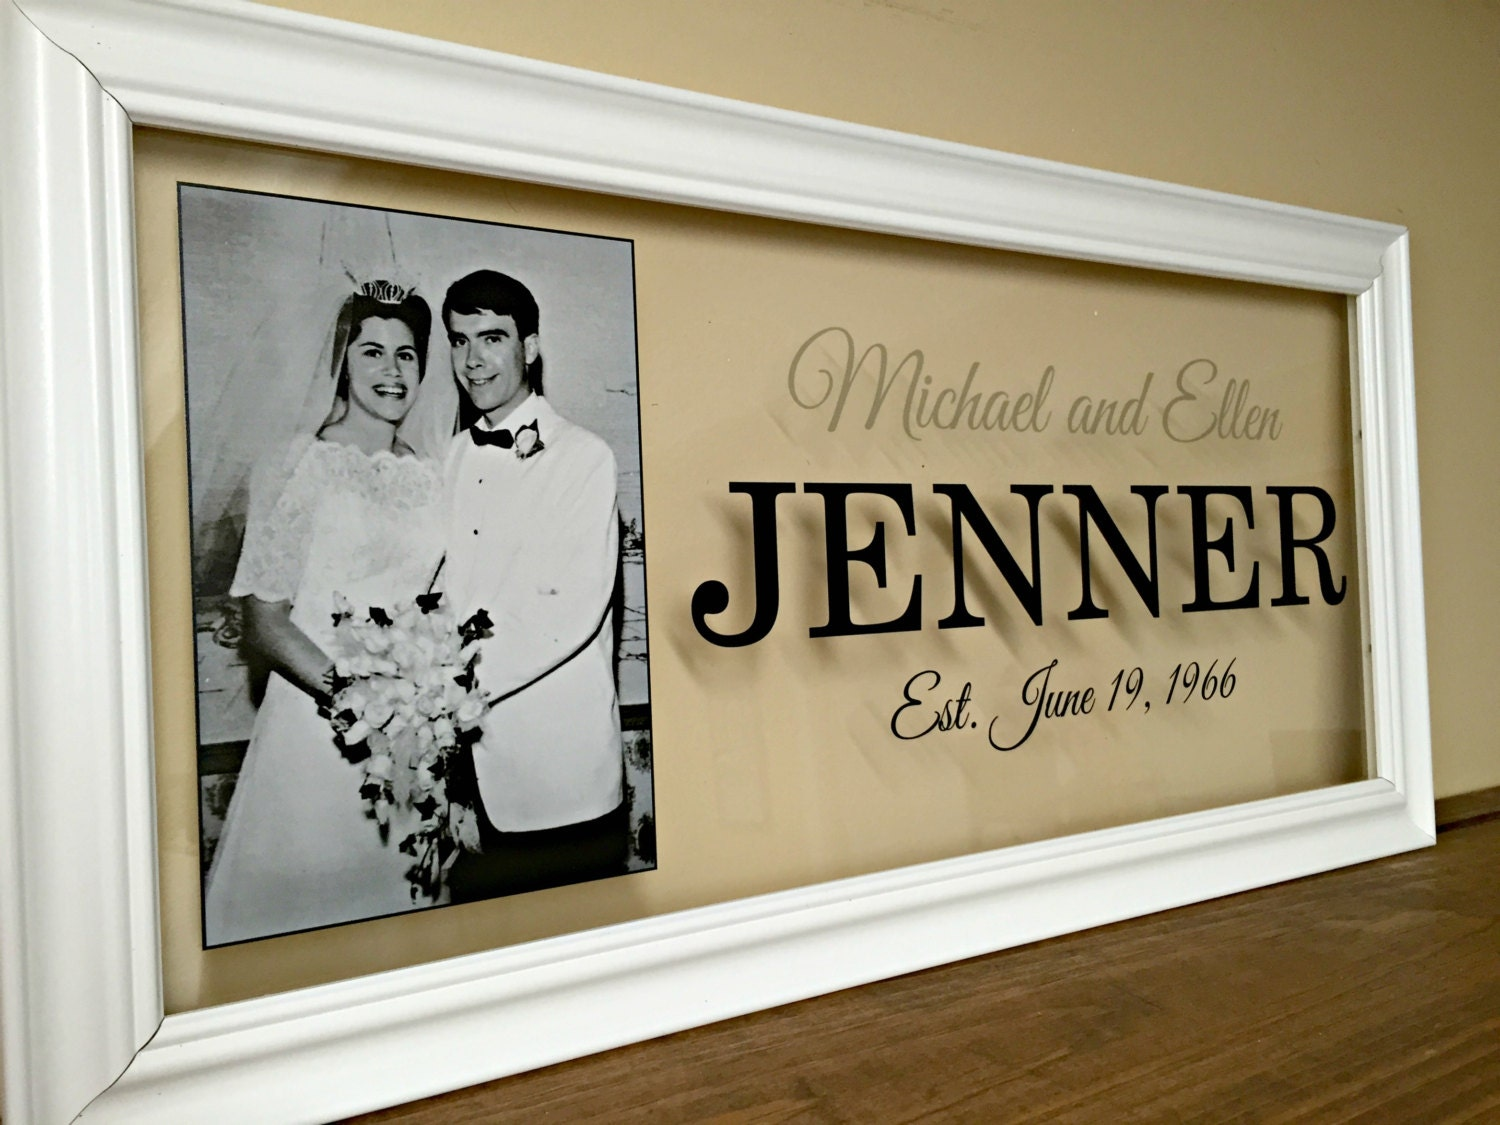 Gifts For Fiftieth Wedding Anniversary: 50th Anniversary Gifts For Parents 50th Anniversary Gifts